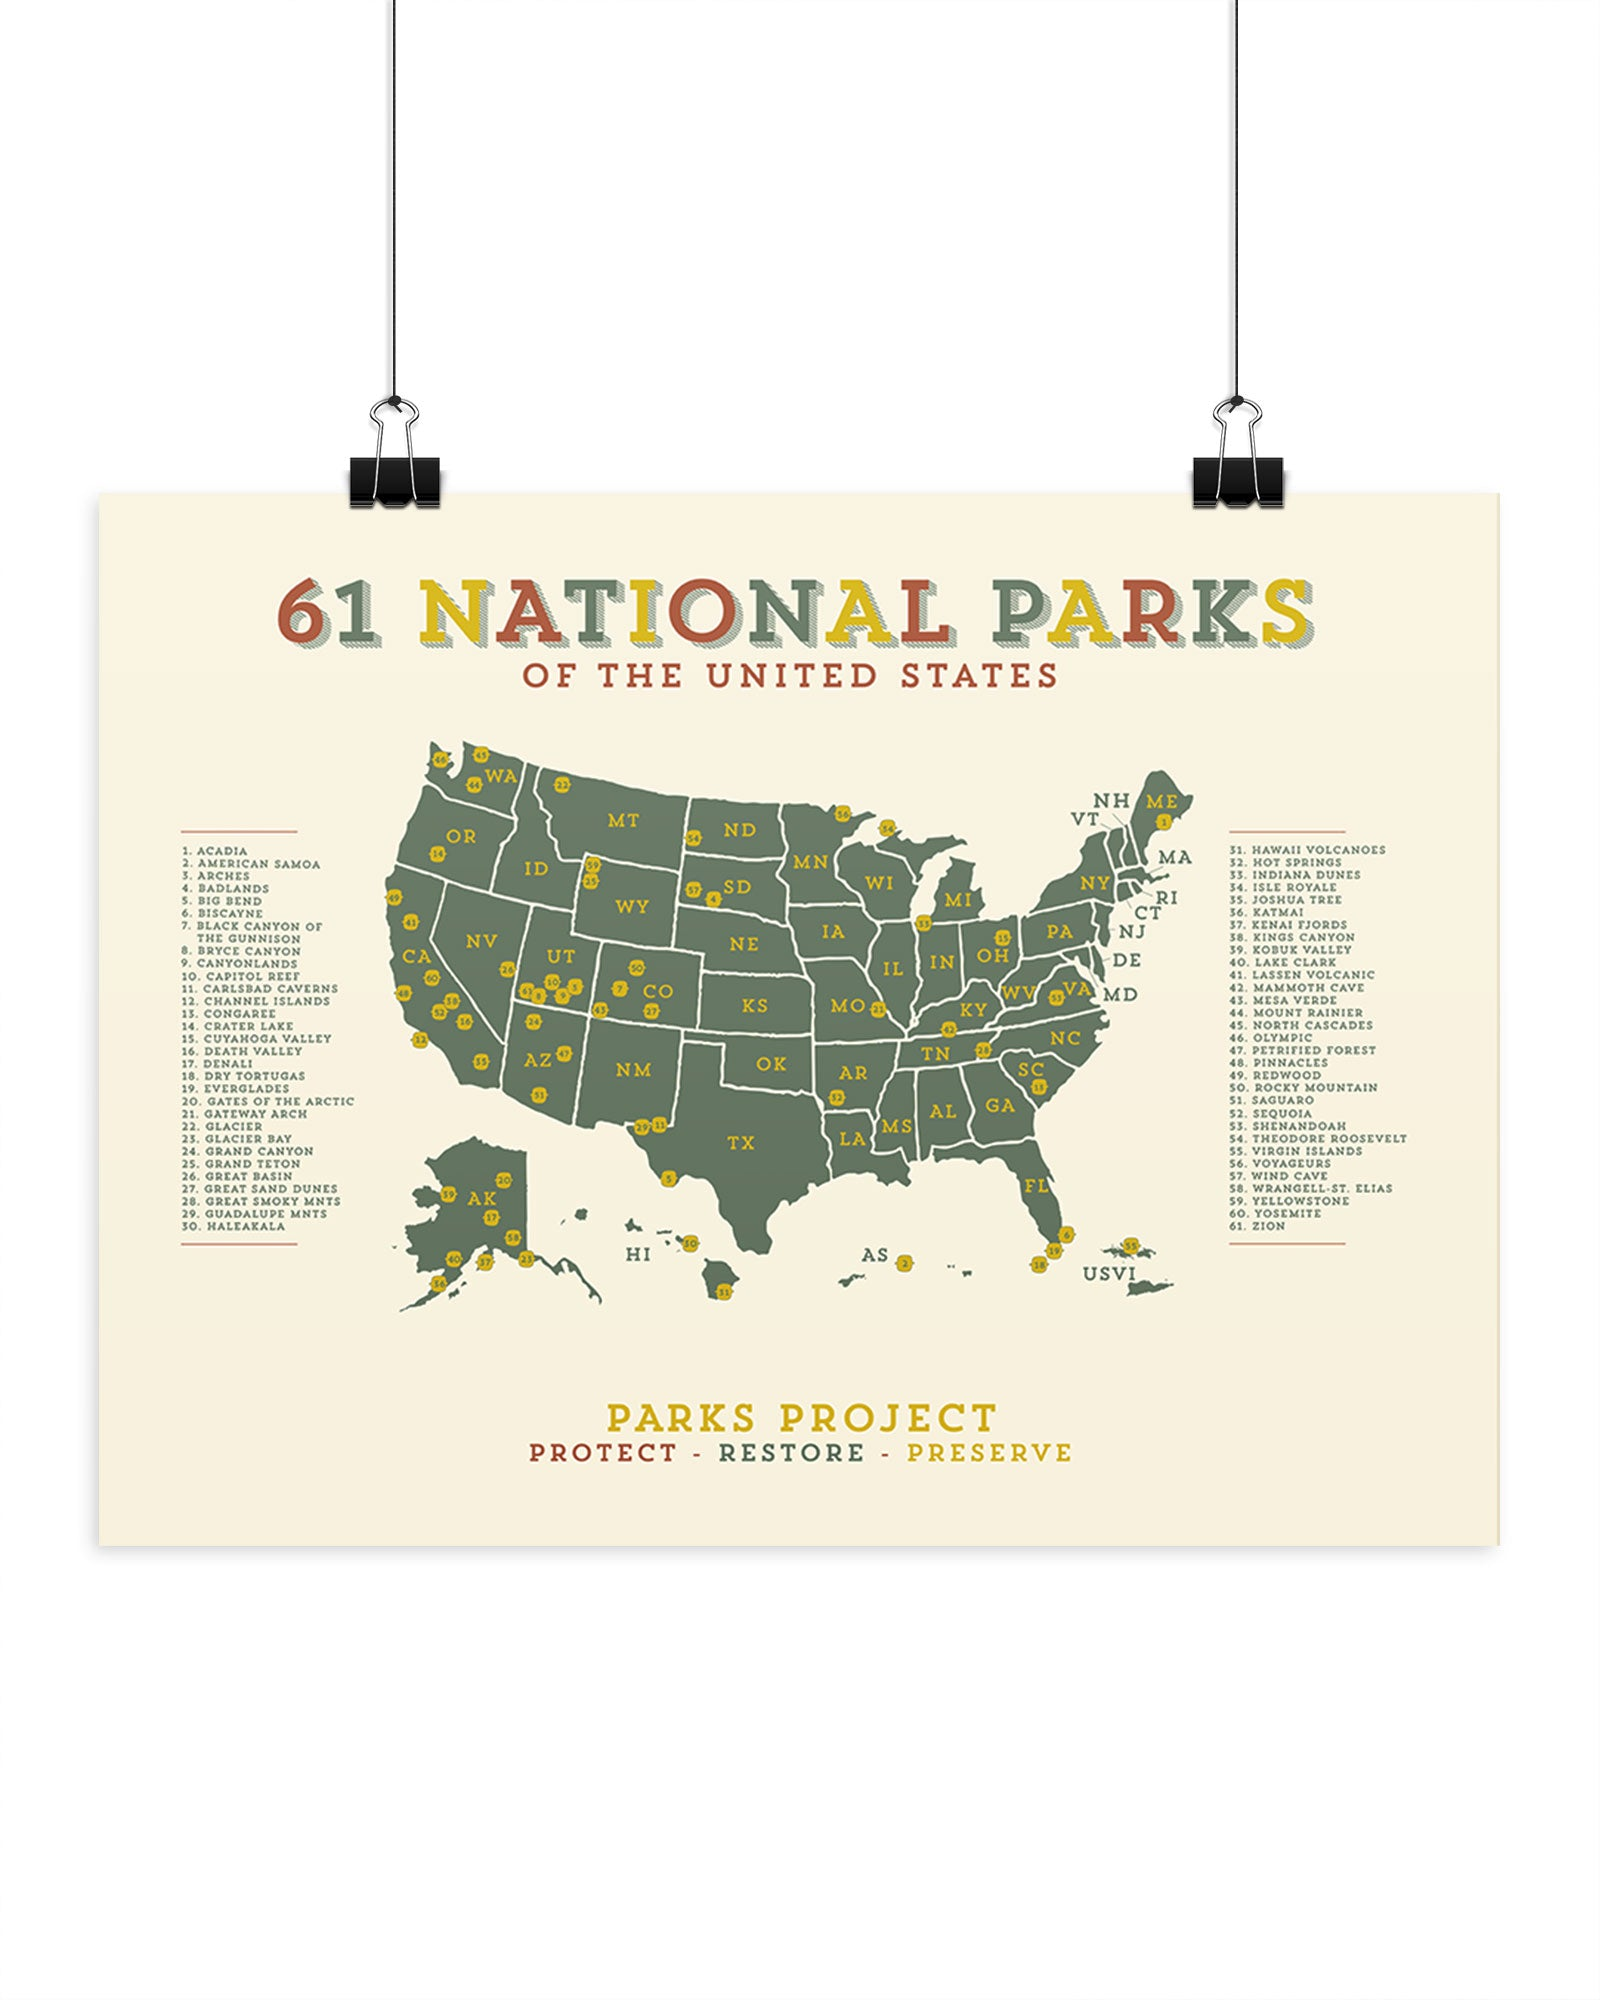 National Parks Mapped Green Acres Poster National Parks Mapped Green Acres  Poster